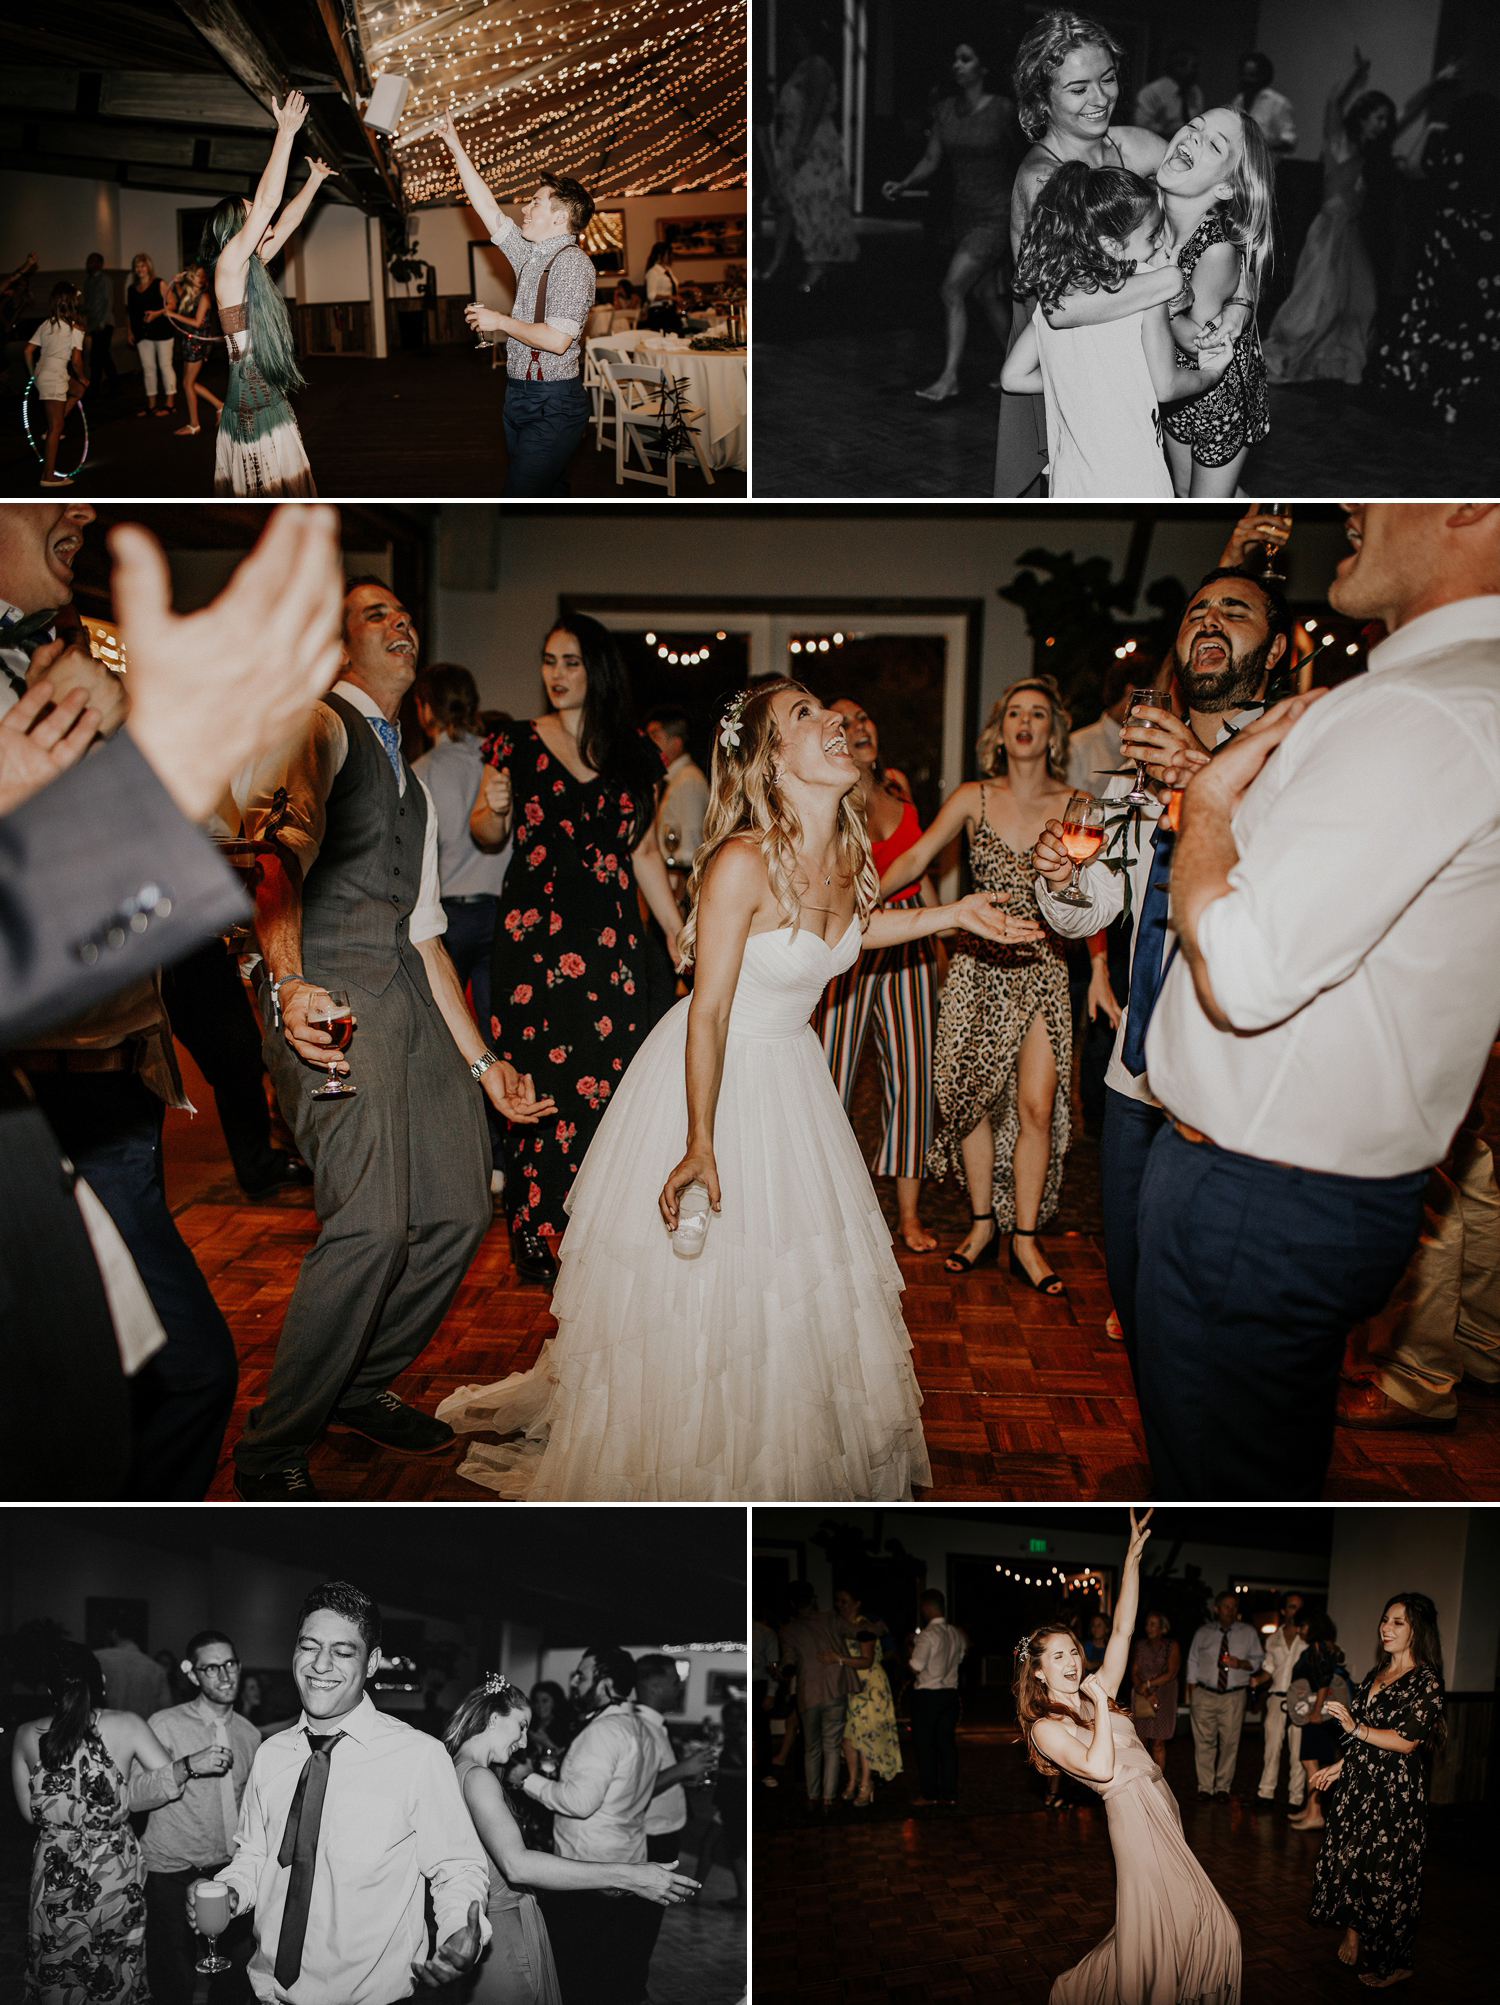 A festival themed wedding at Calamigos Ranch in Malibu, California by Kadi Tobin Photographer